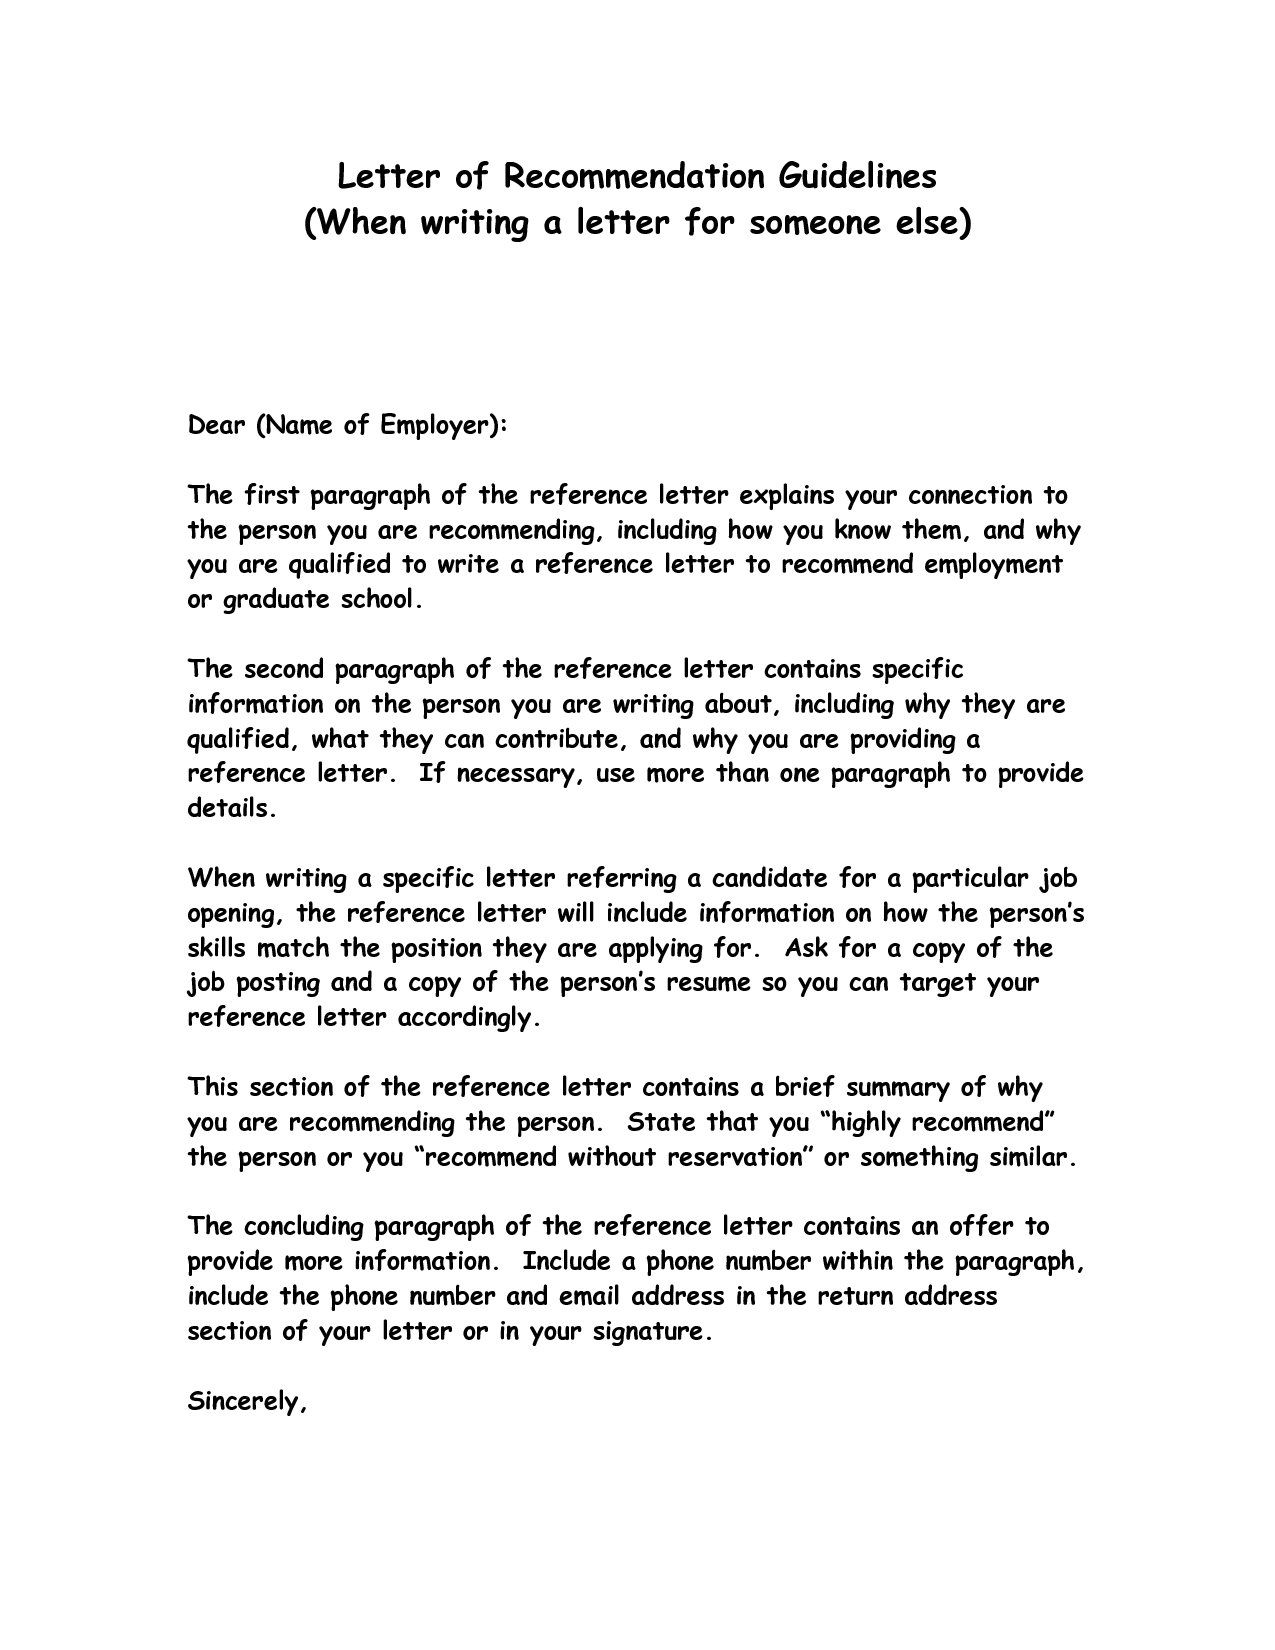 How to write a character reference letter example